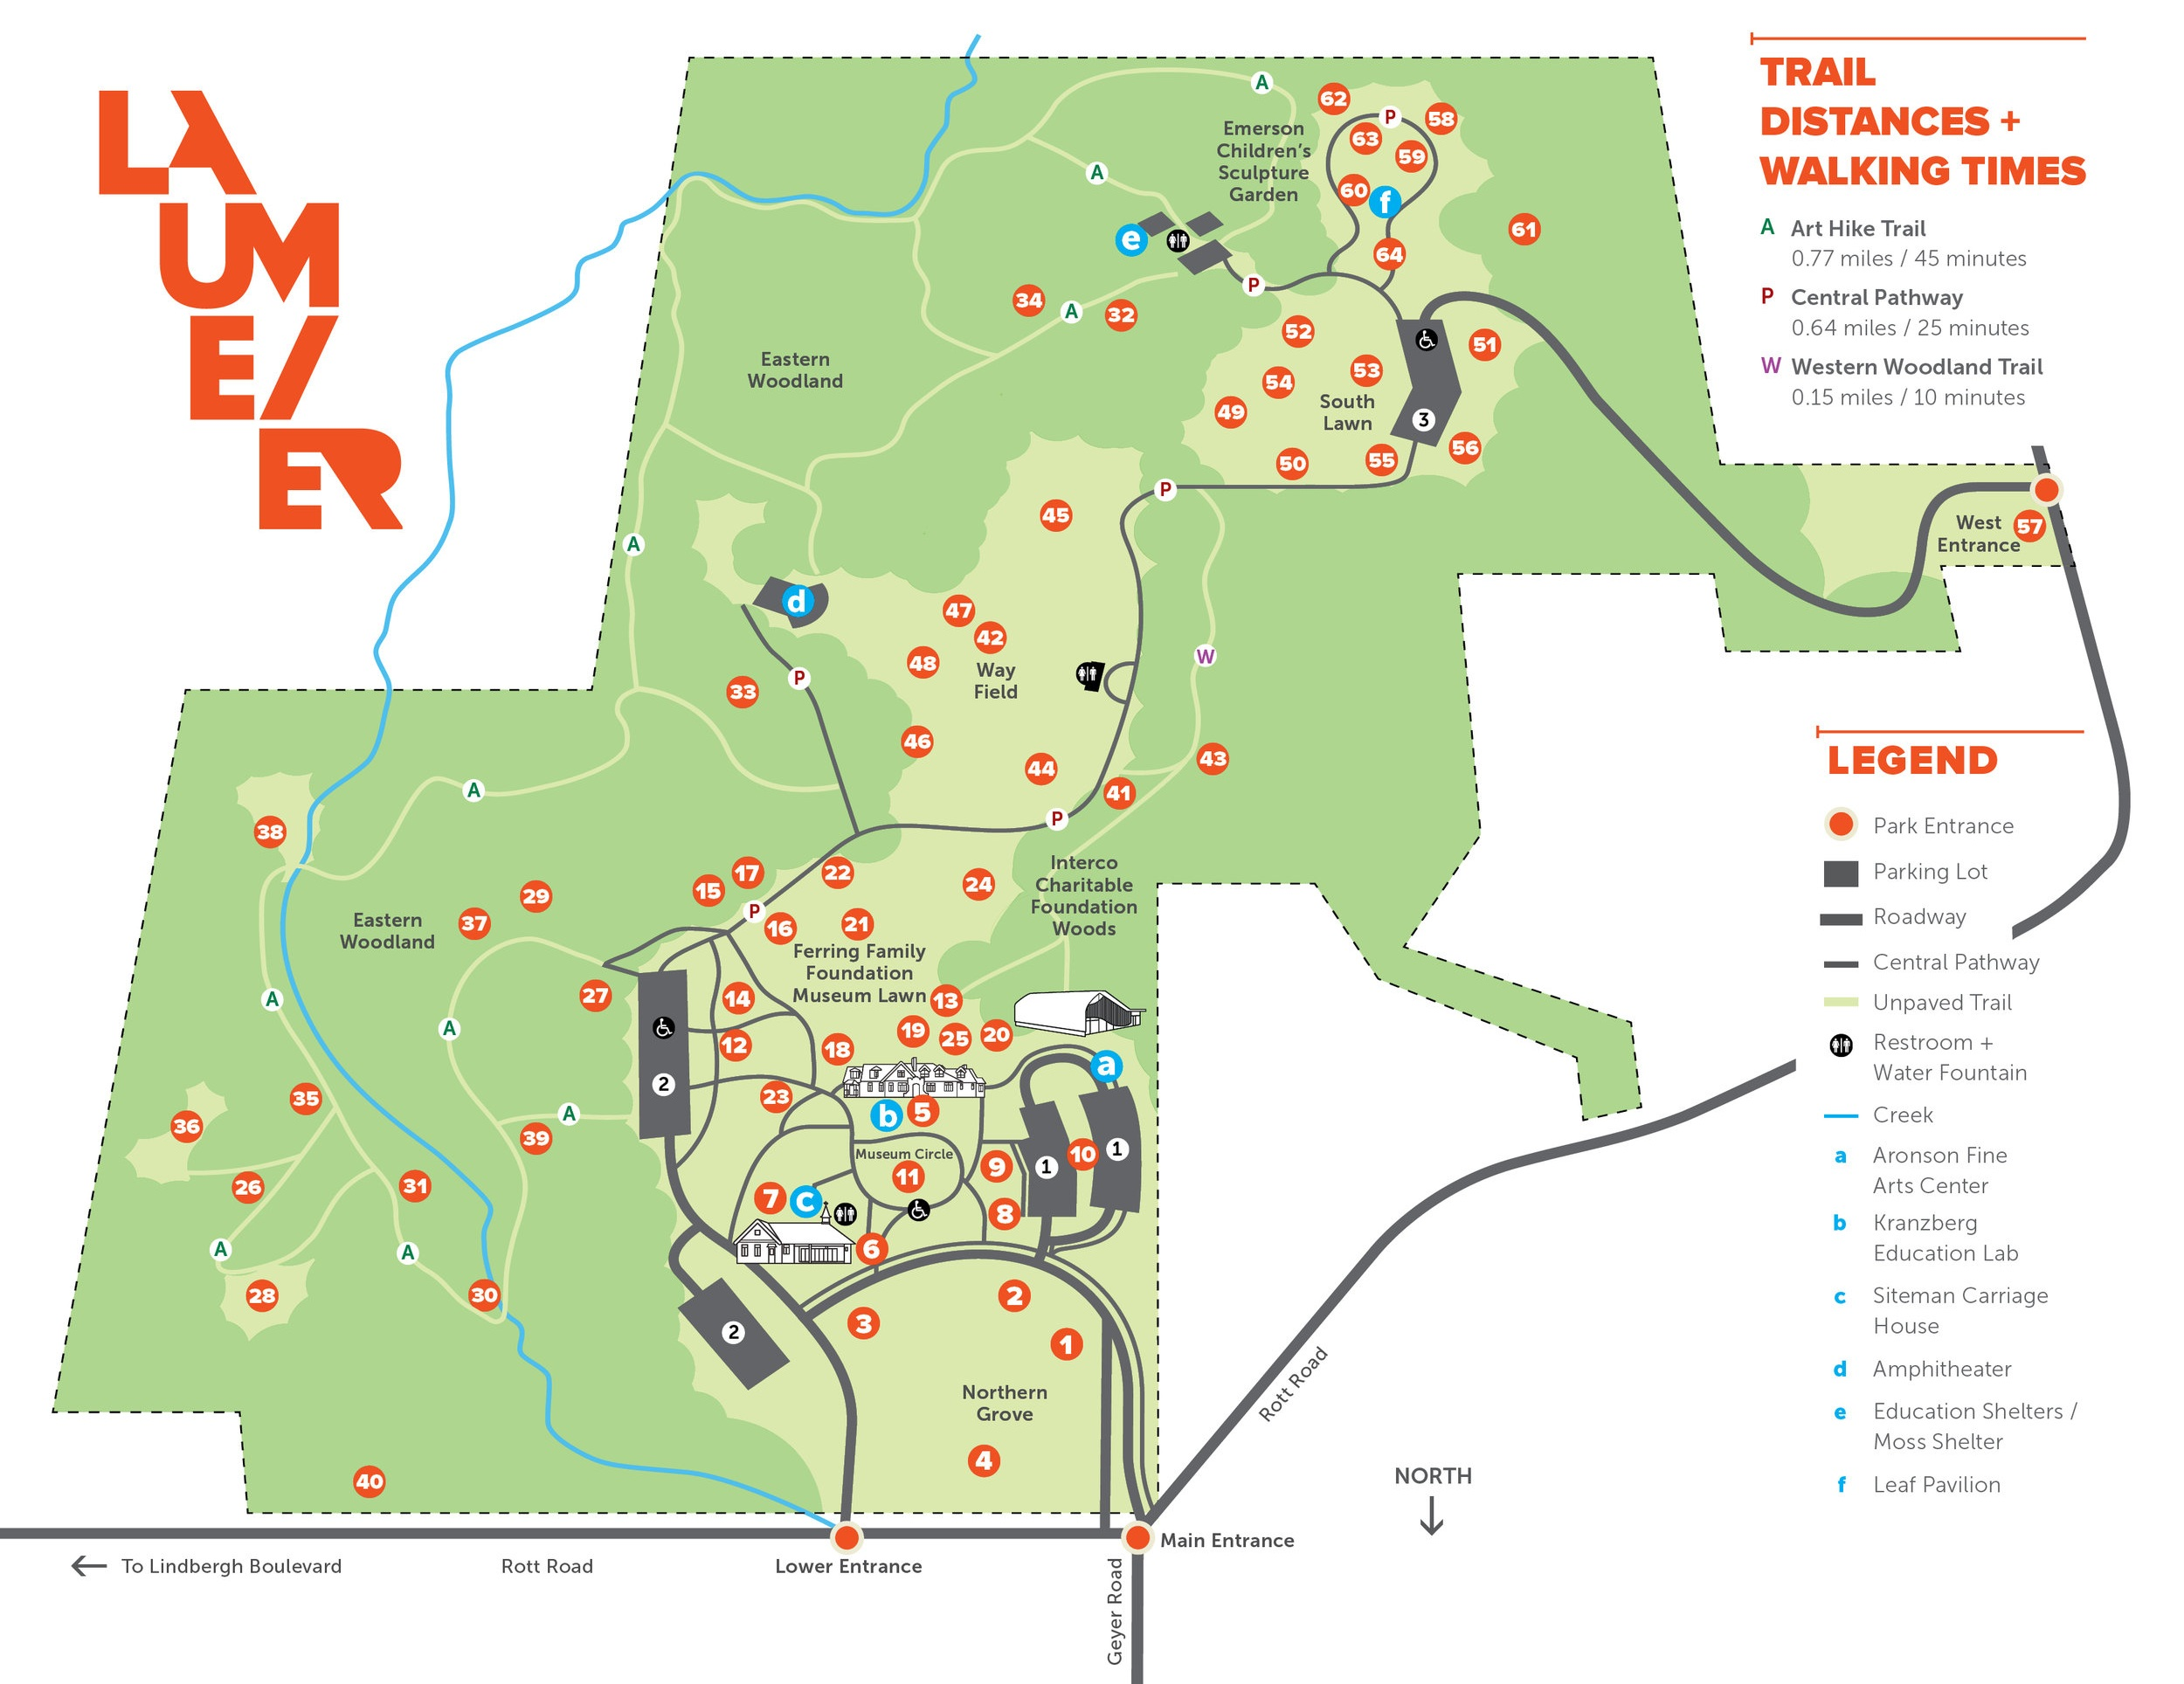 Download the Full Printed Park Map